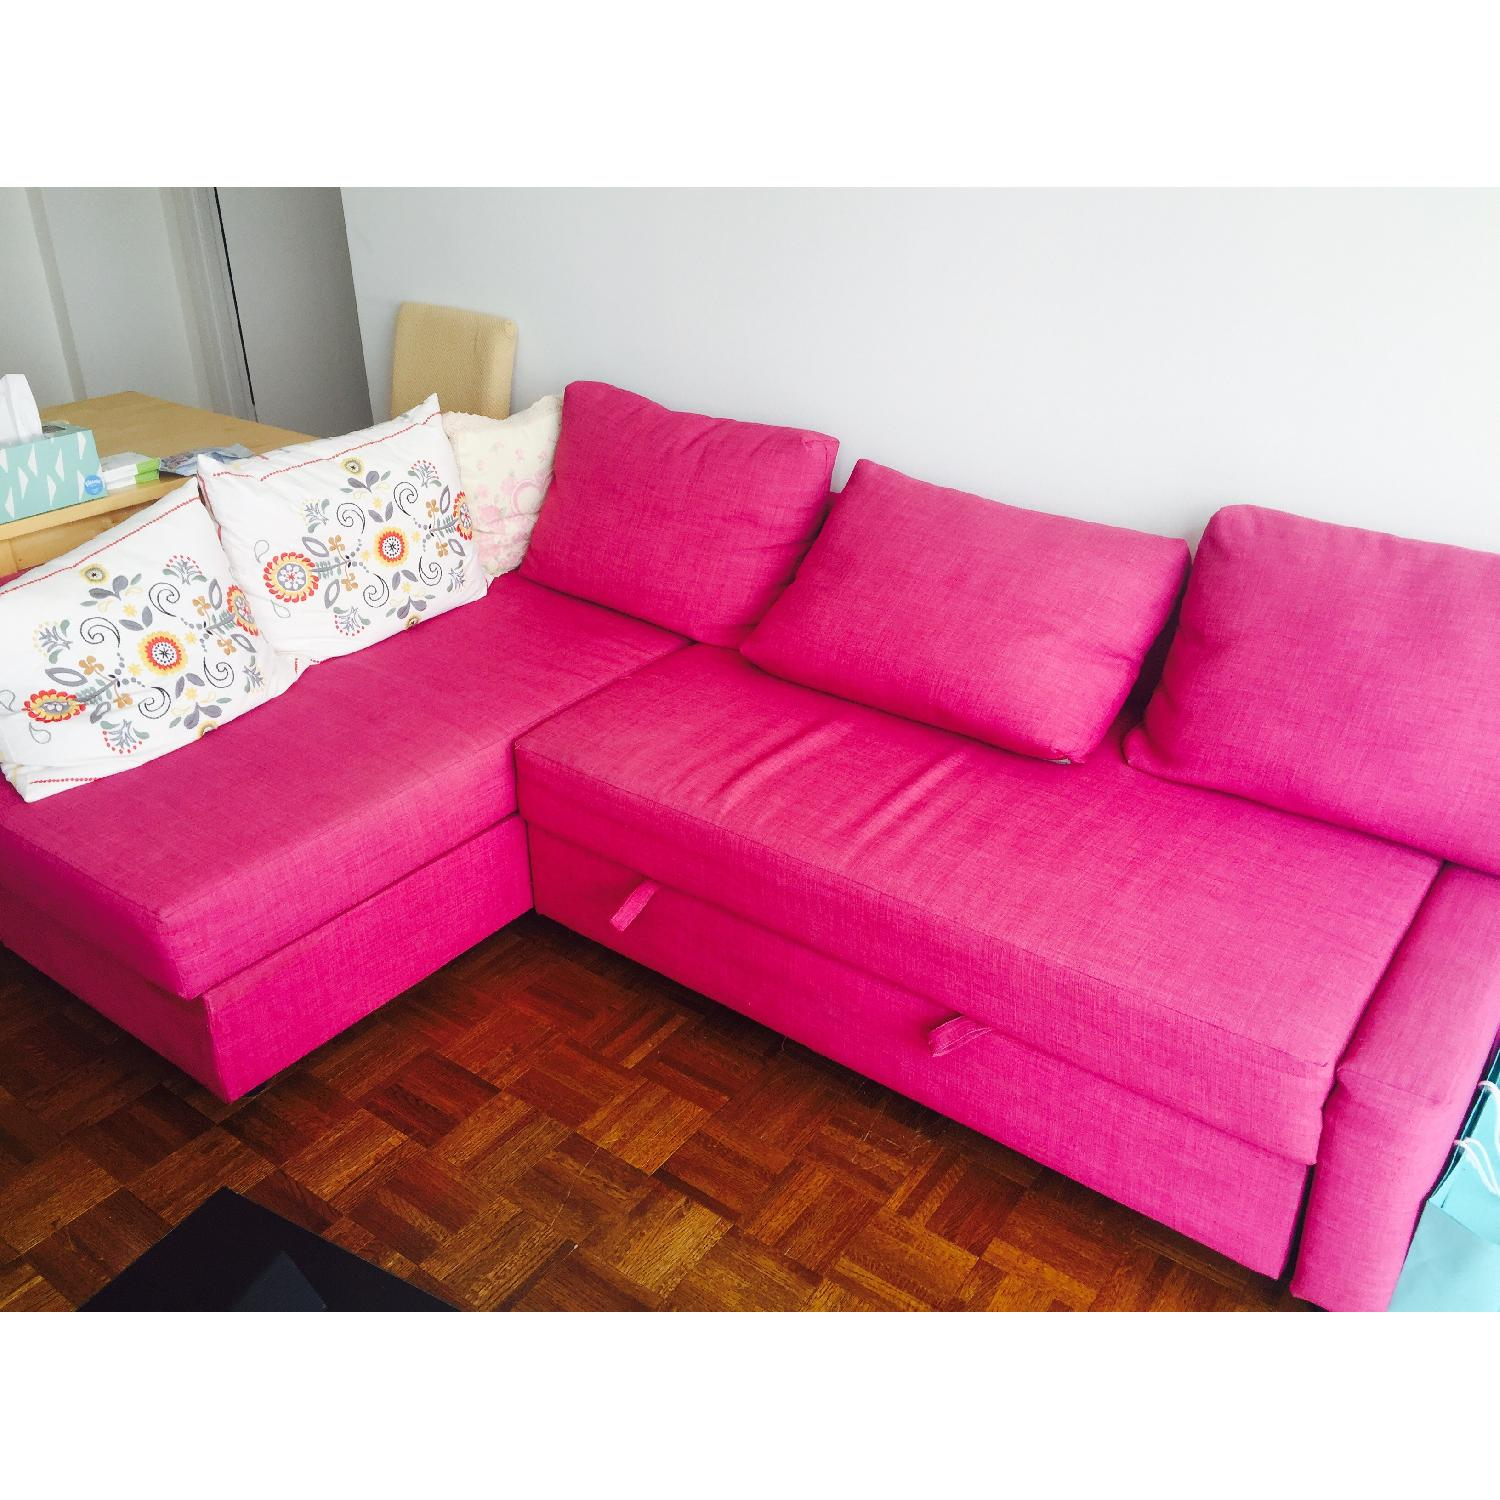 ... Ikea Friheten Pink Sleeper Sectional Sofa 2 ...